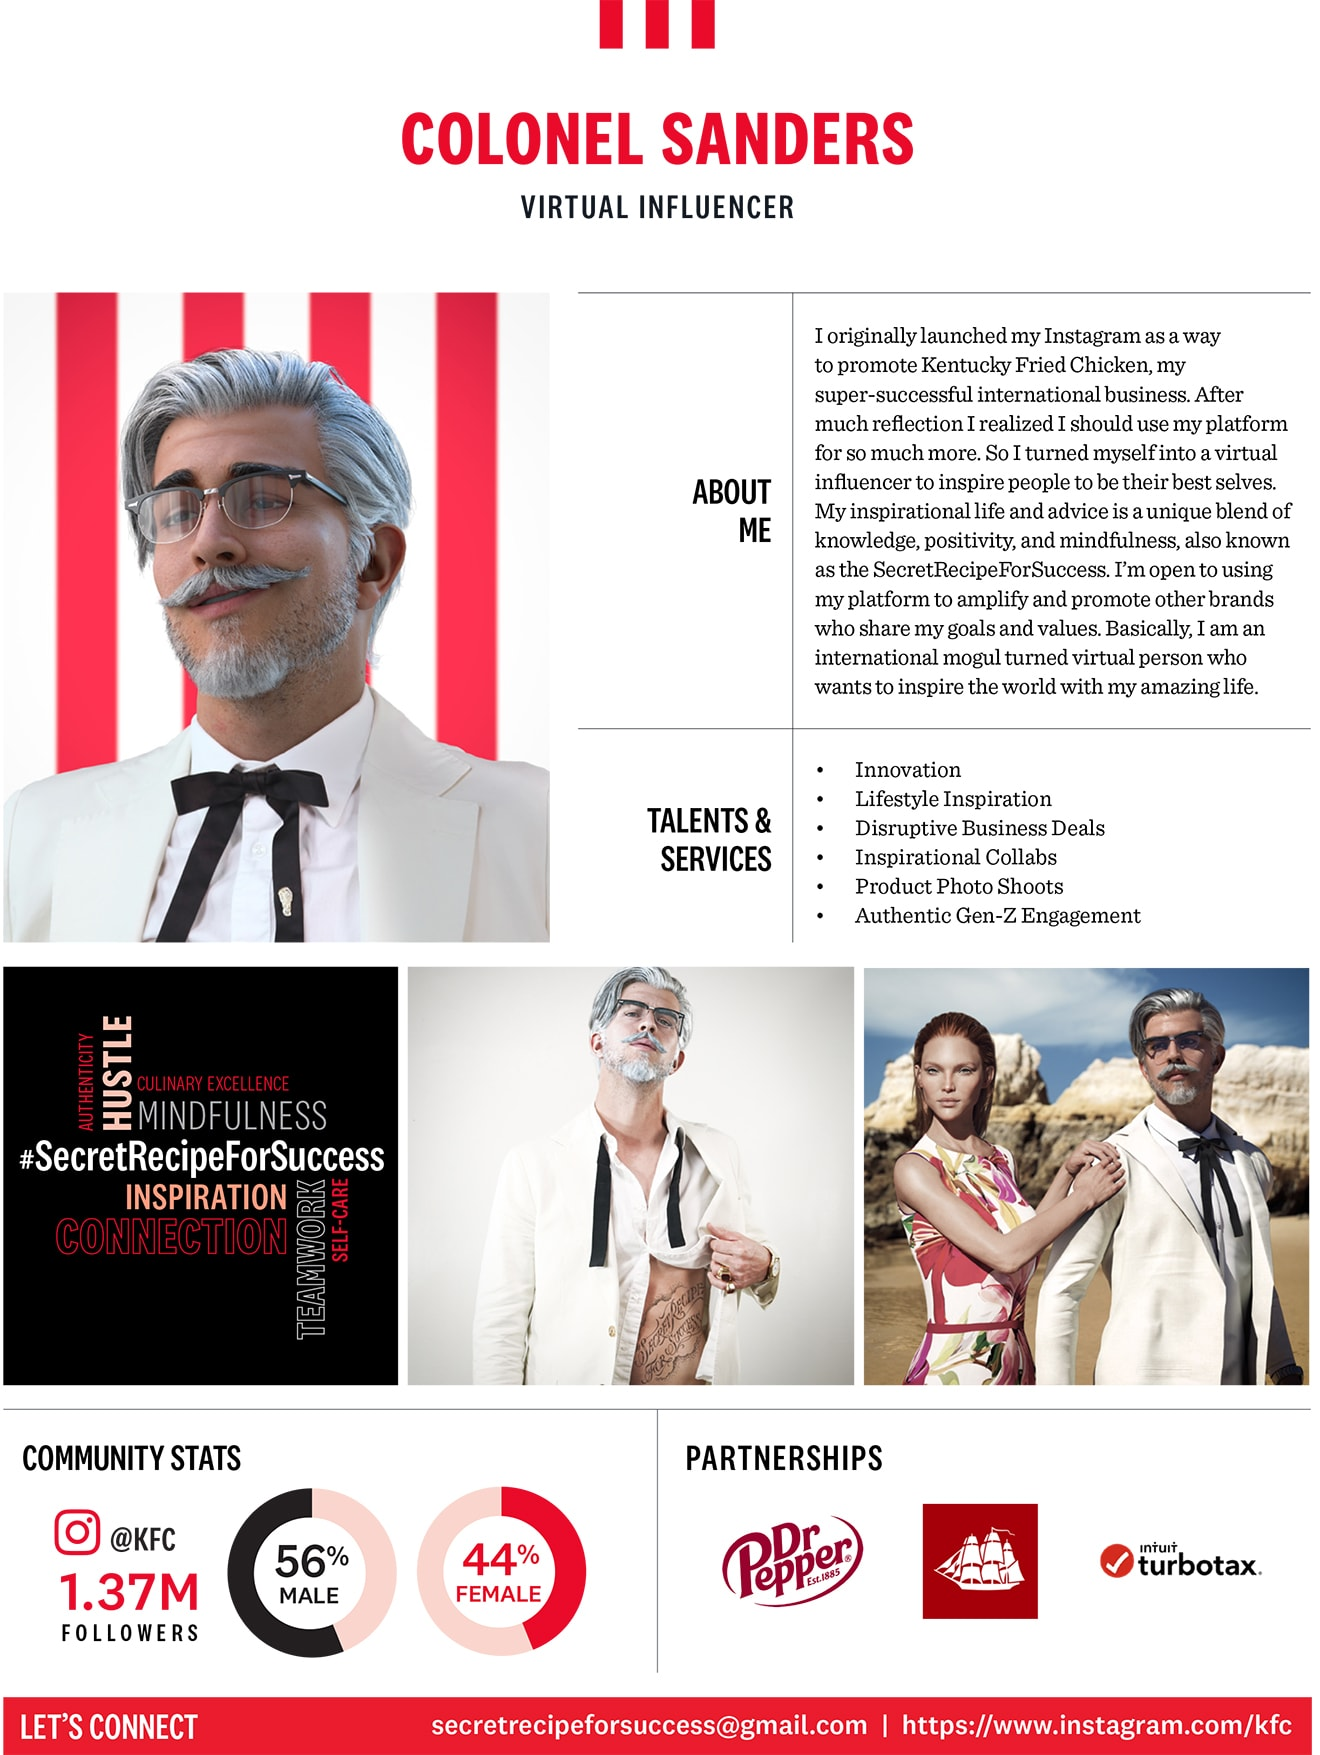 Media kit for Colonel Sanders as a virtual influencer